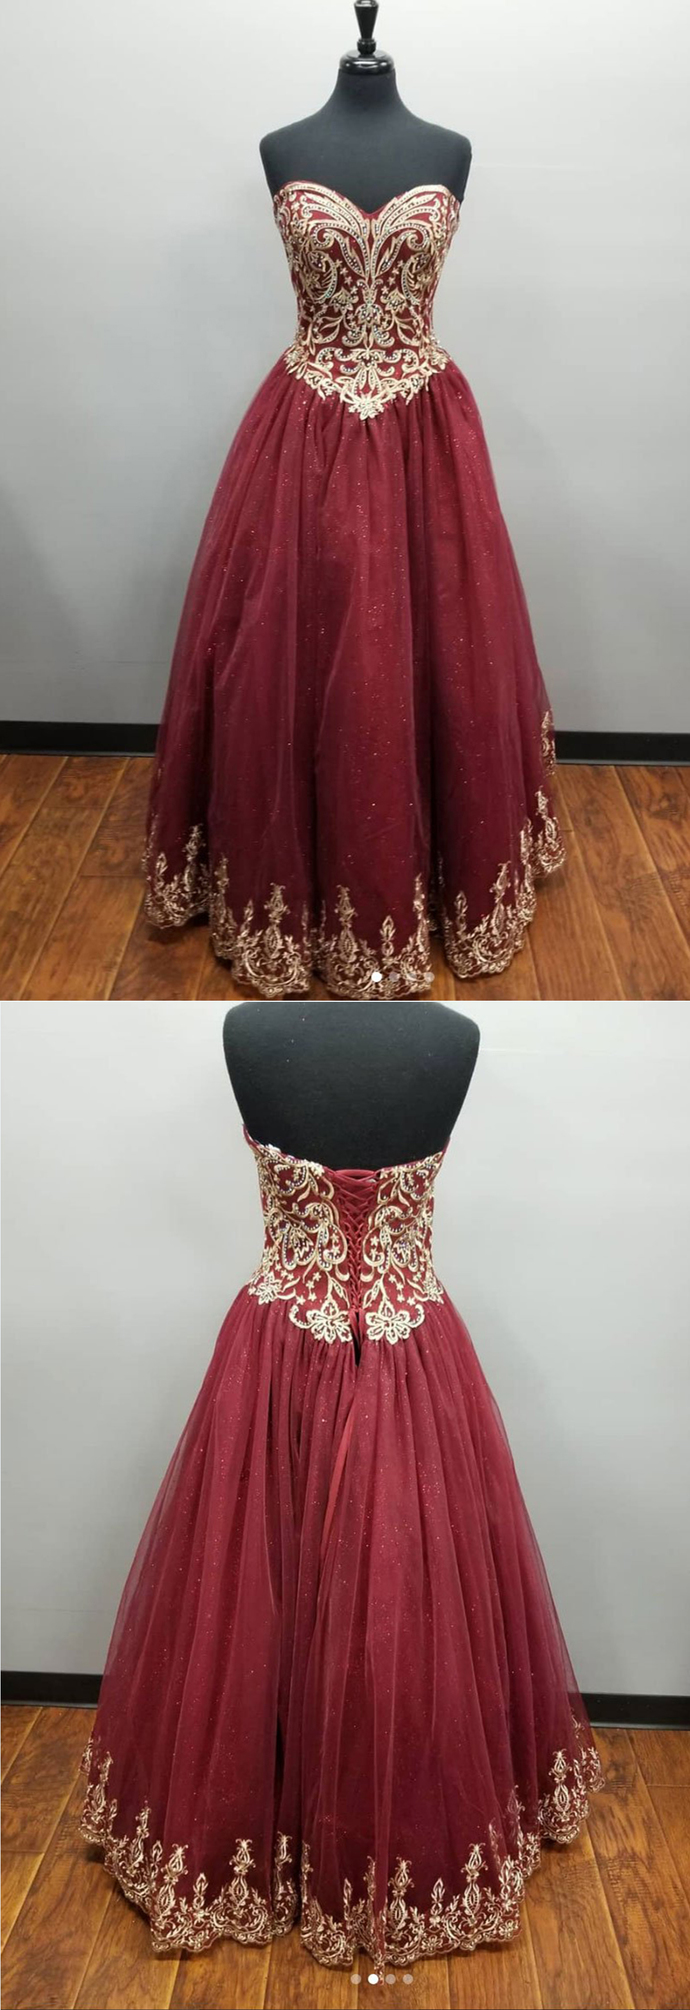 Sweetheart burgundy tulle long a line evening dress, gold lace beaded prom dress